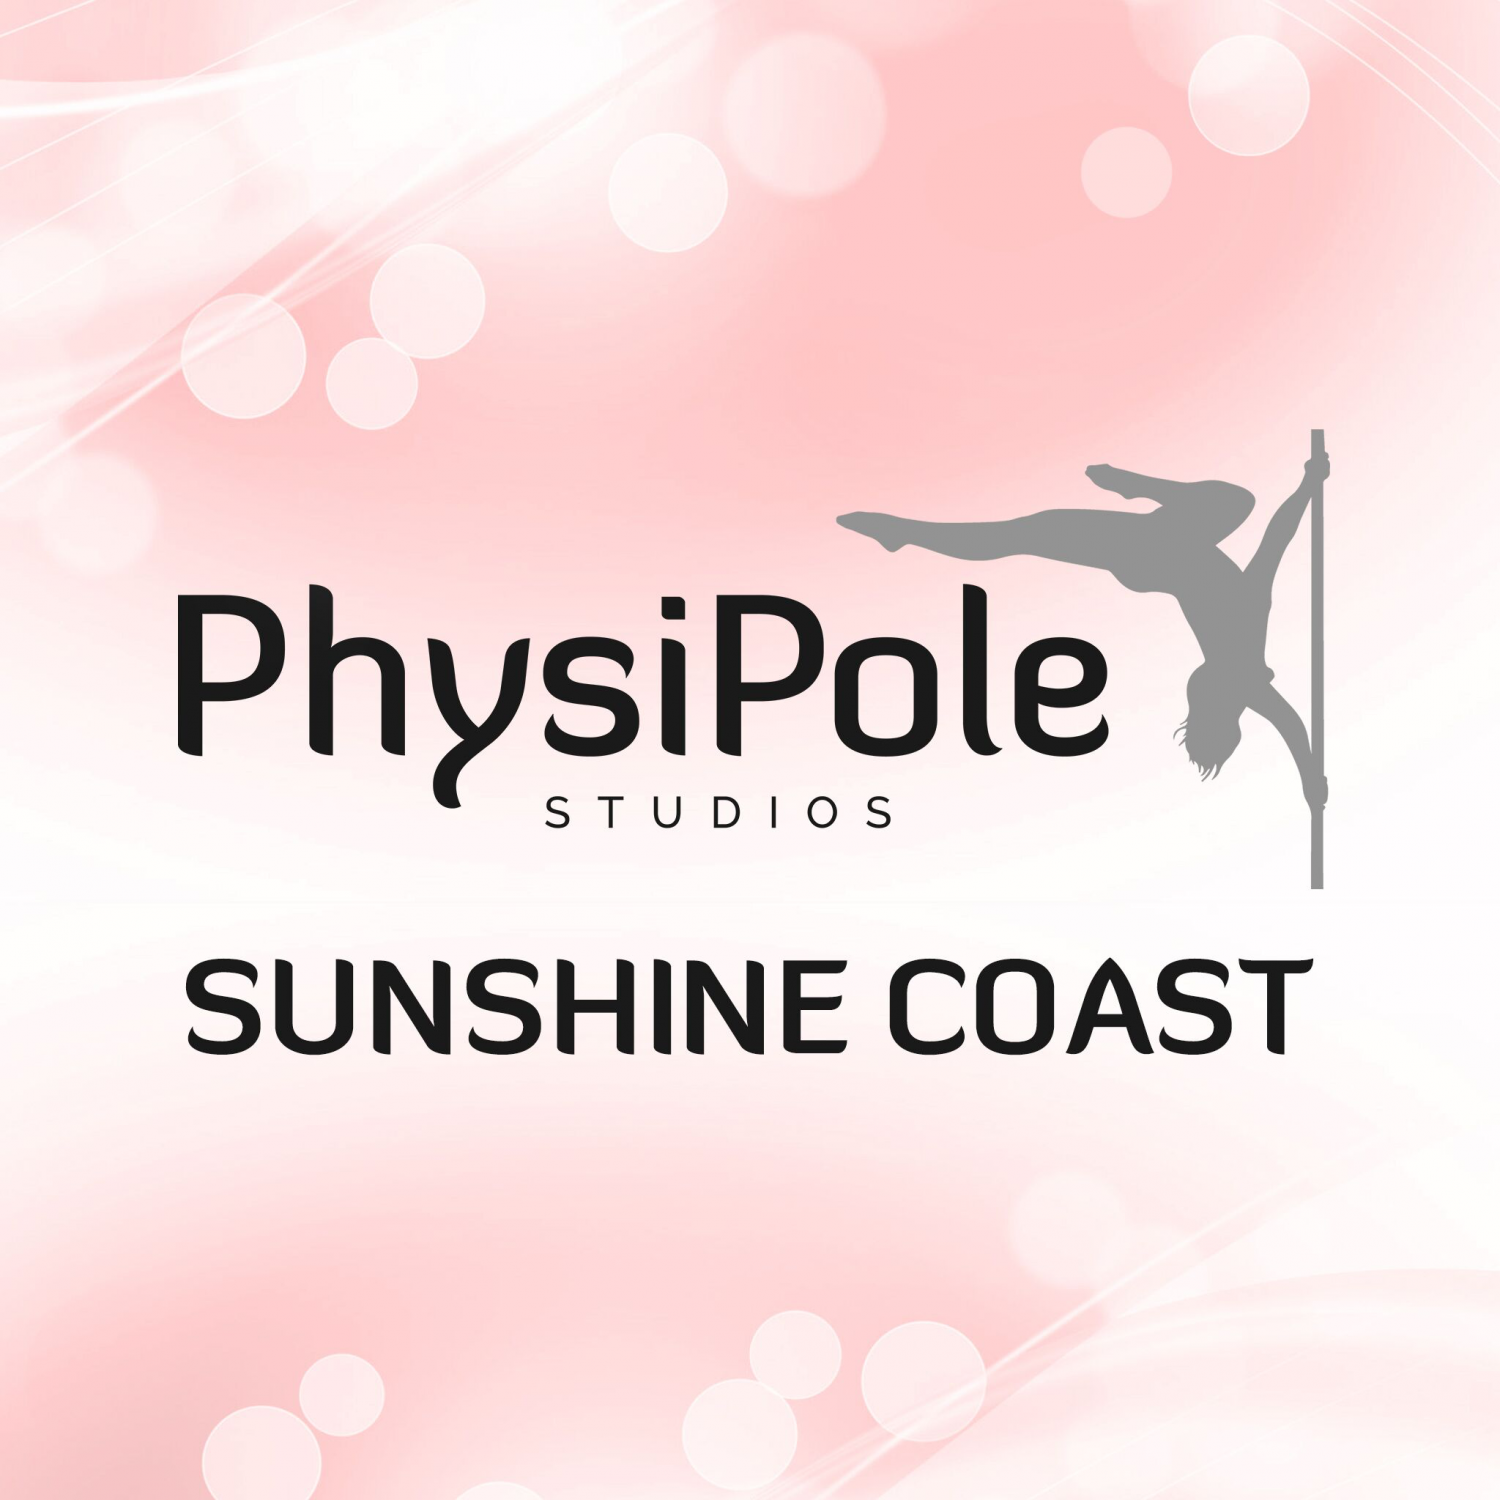 PhysiPole Studios Sunshine Coast